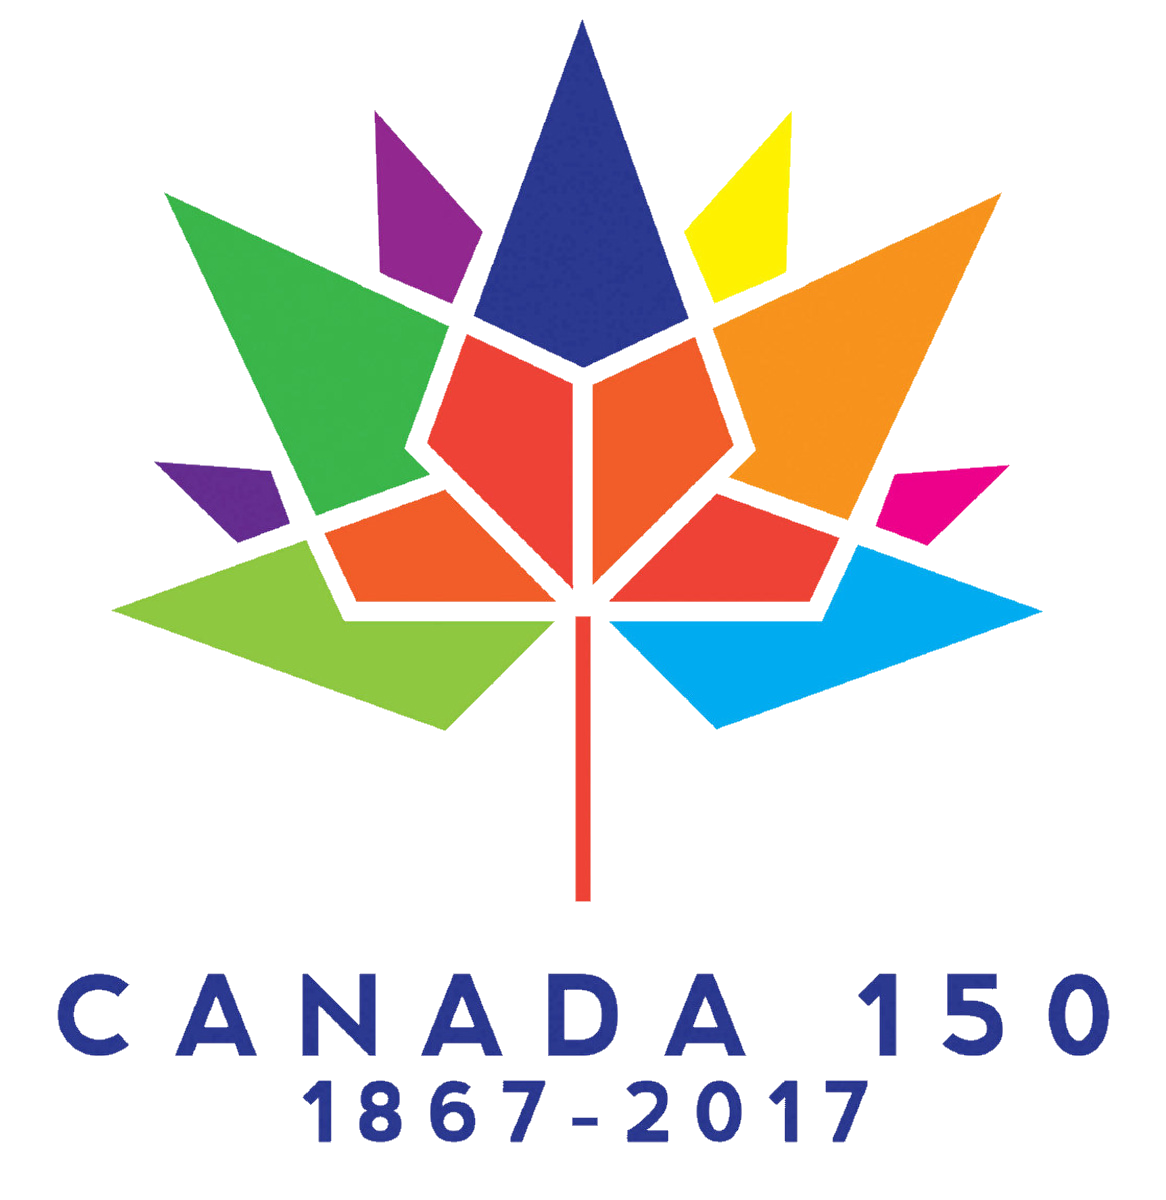 Canada-150-logo3-TR.png